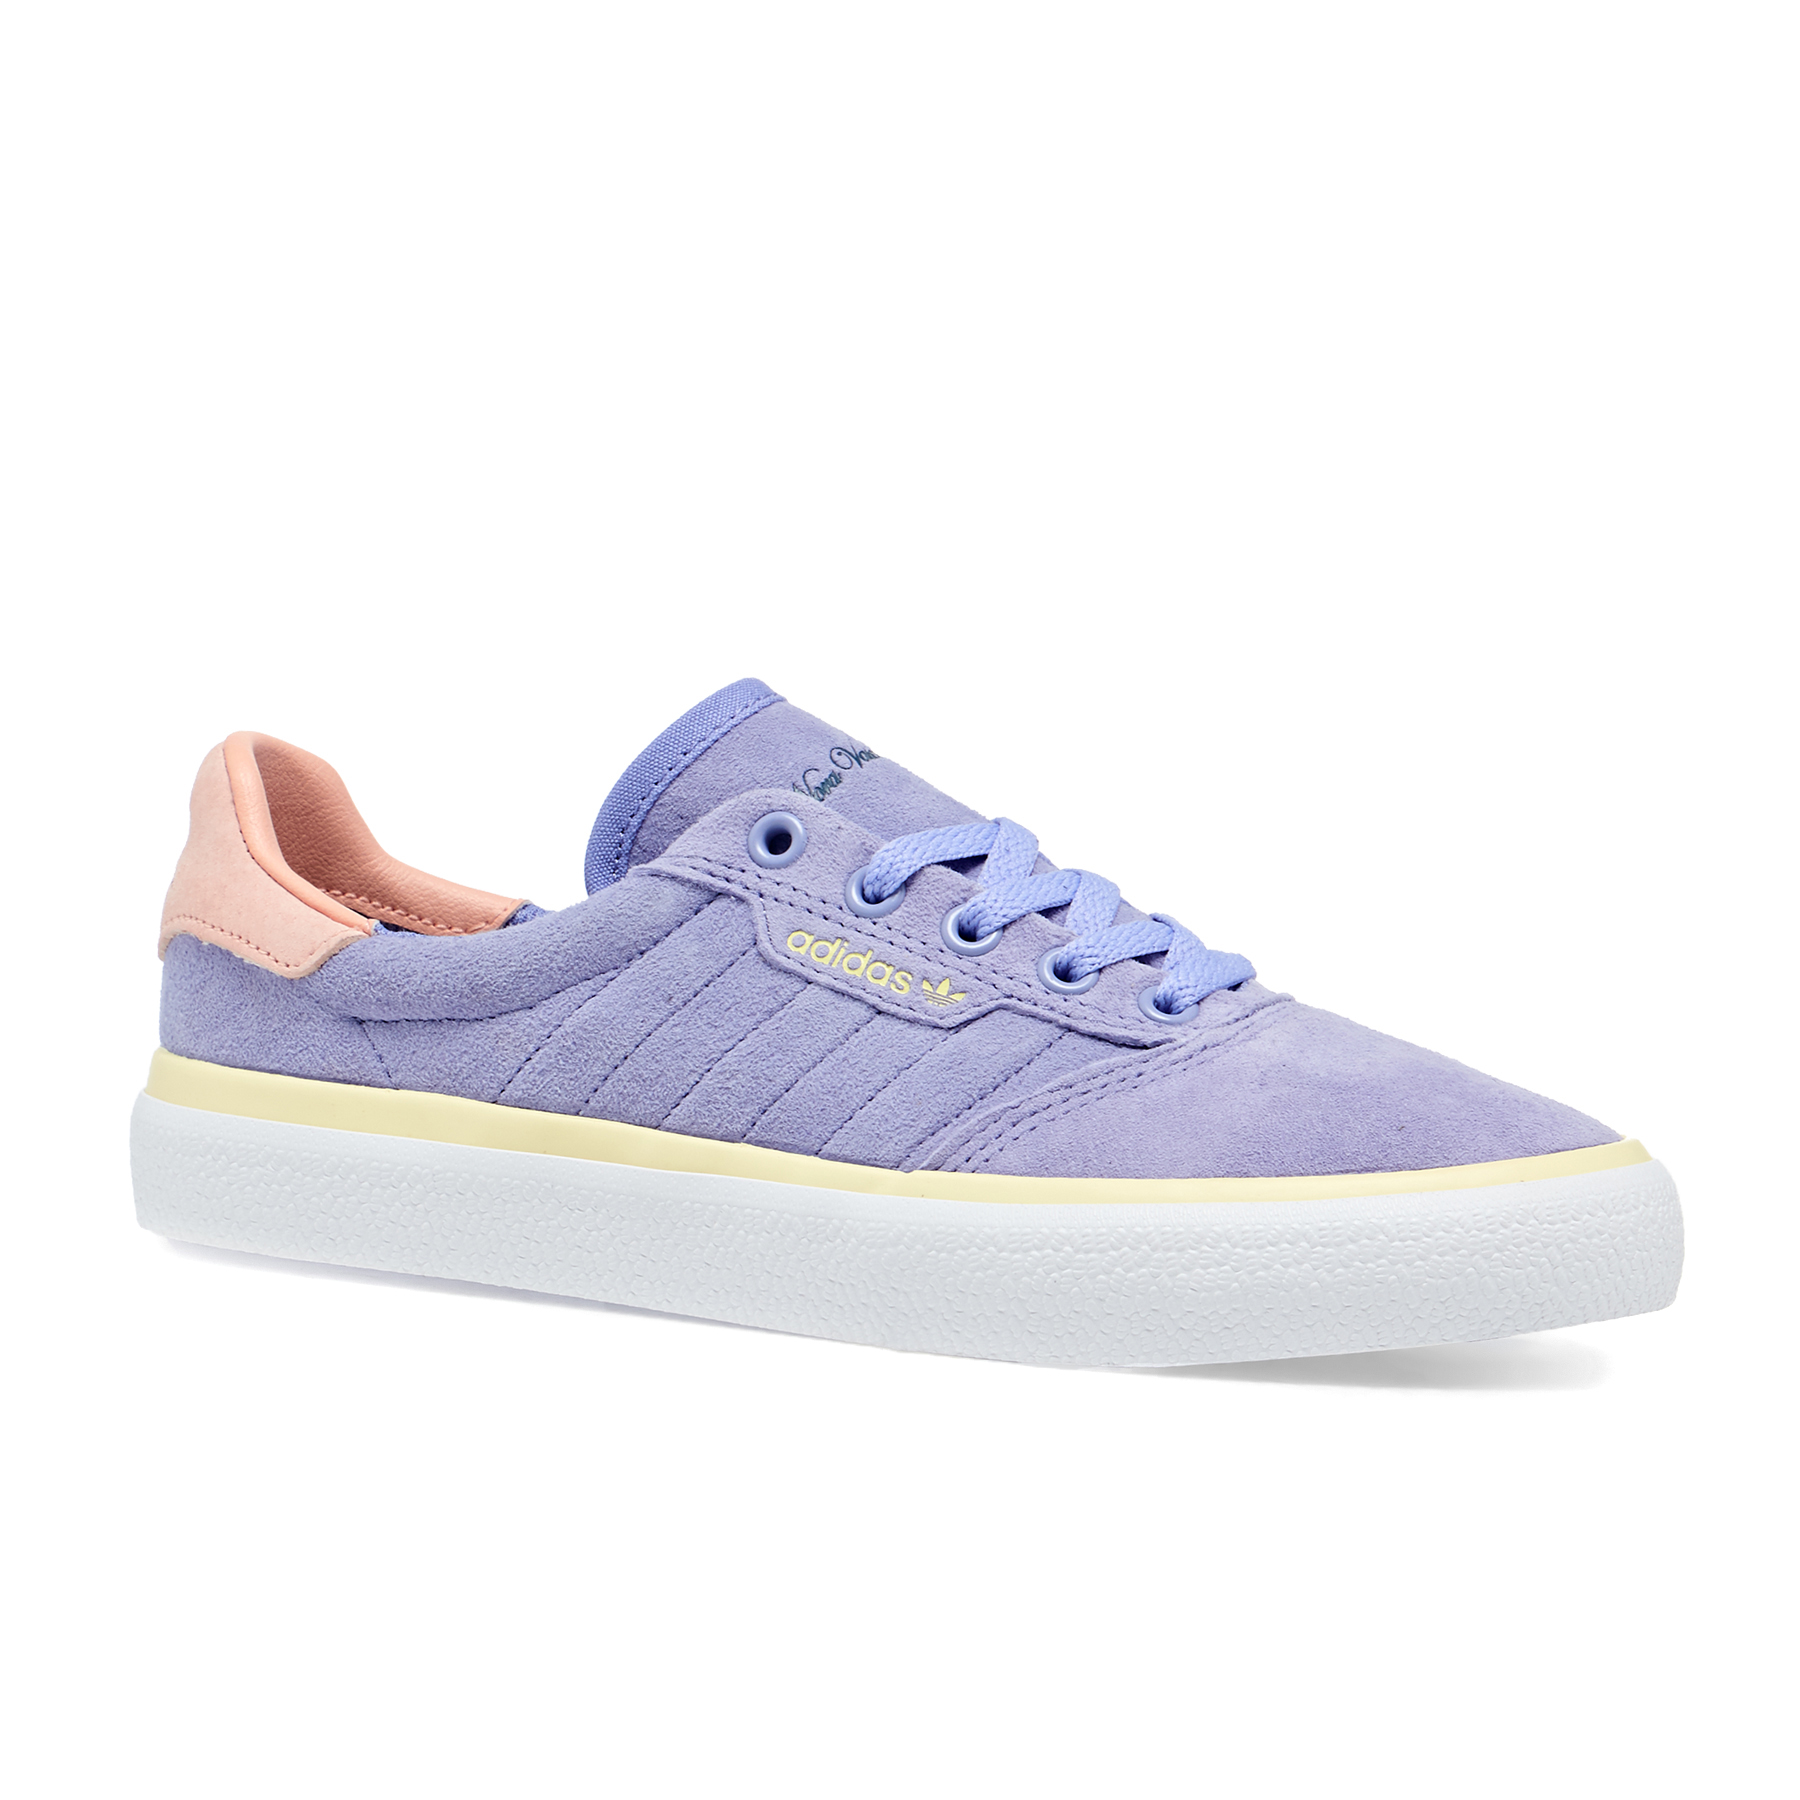 Adidas 3mc X Nora Womens Shoes | Free Delivery Options